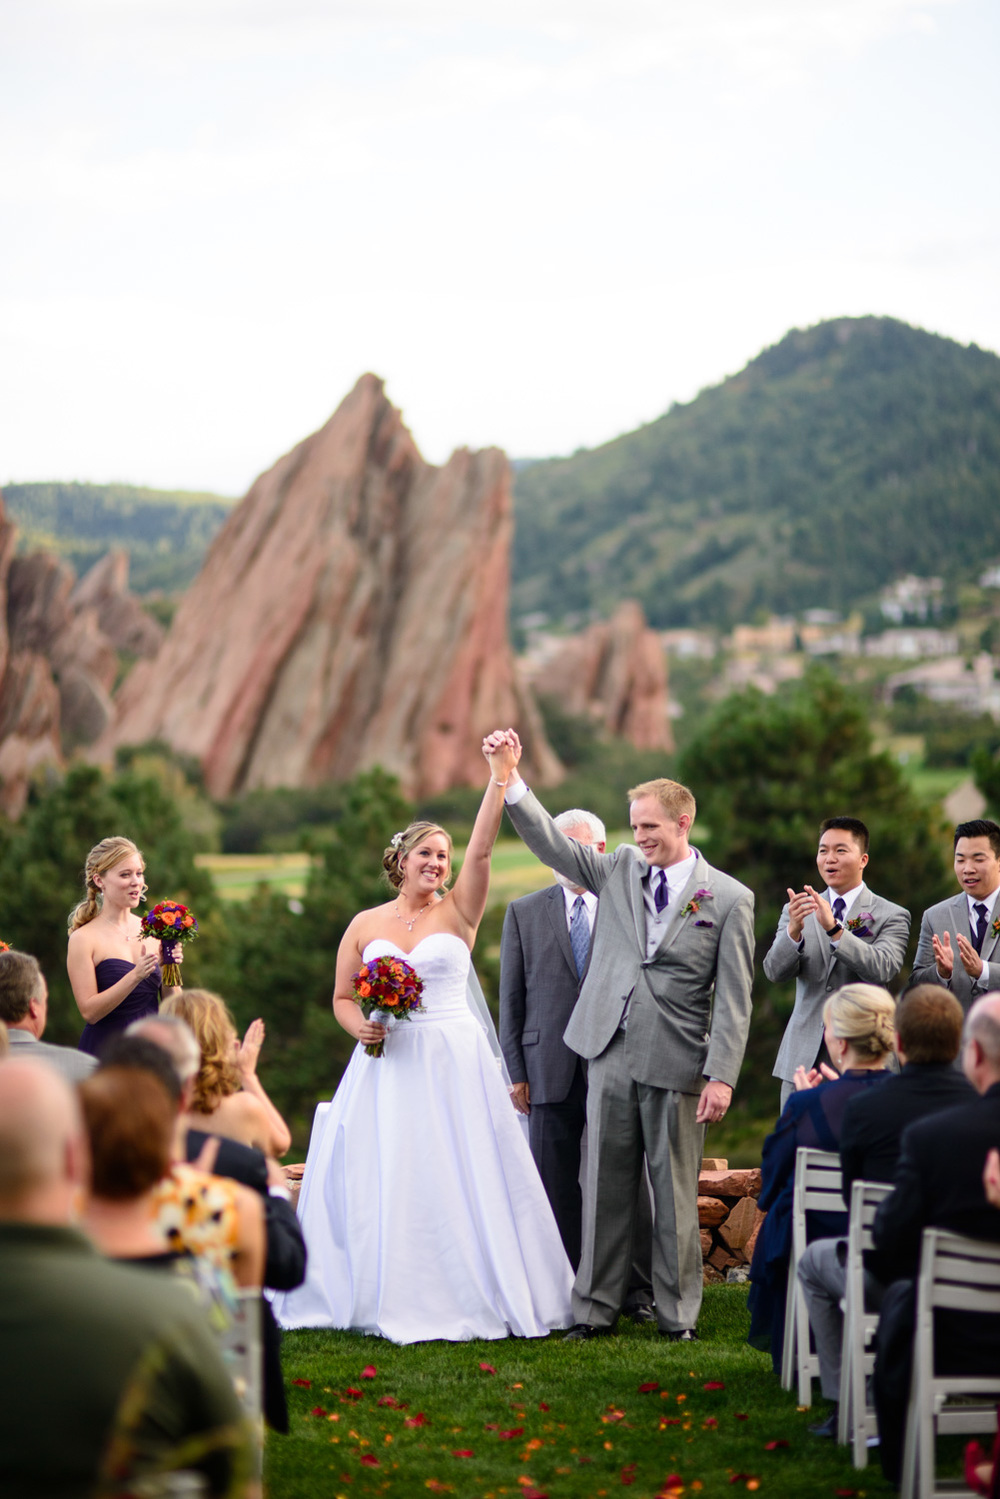 Bride and groom celebrate after ceremony at Arrowhead Golf Course wedding